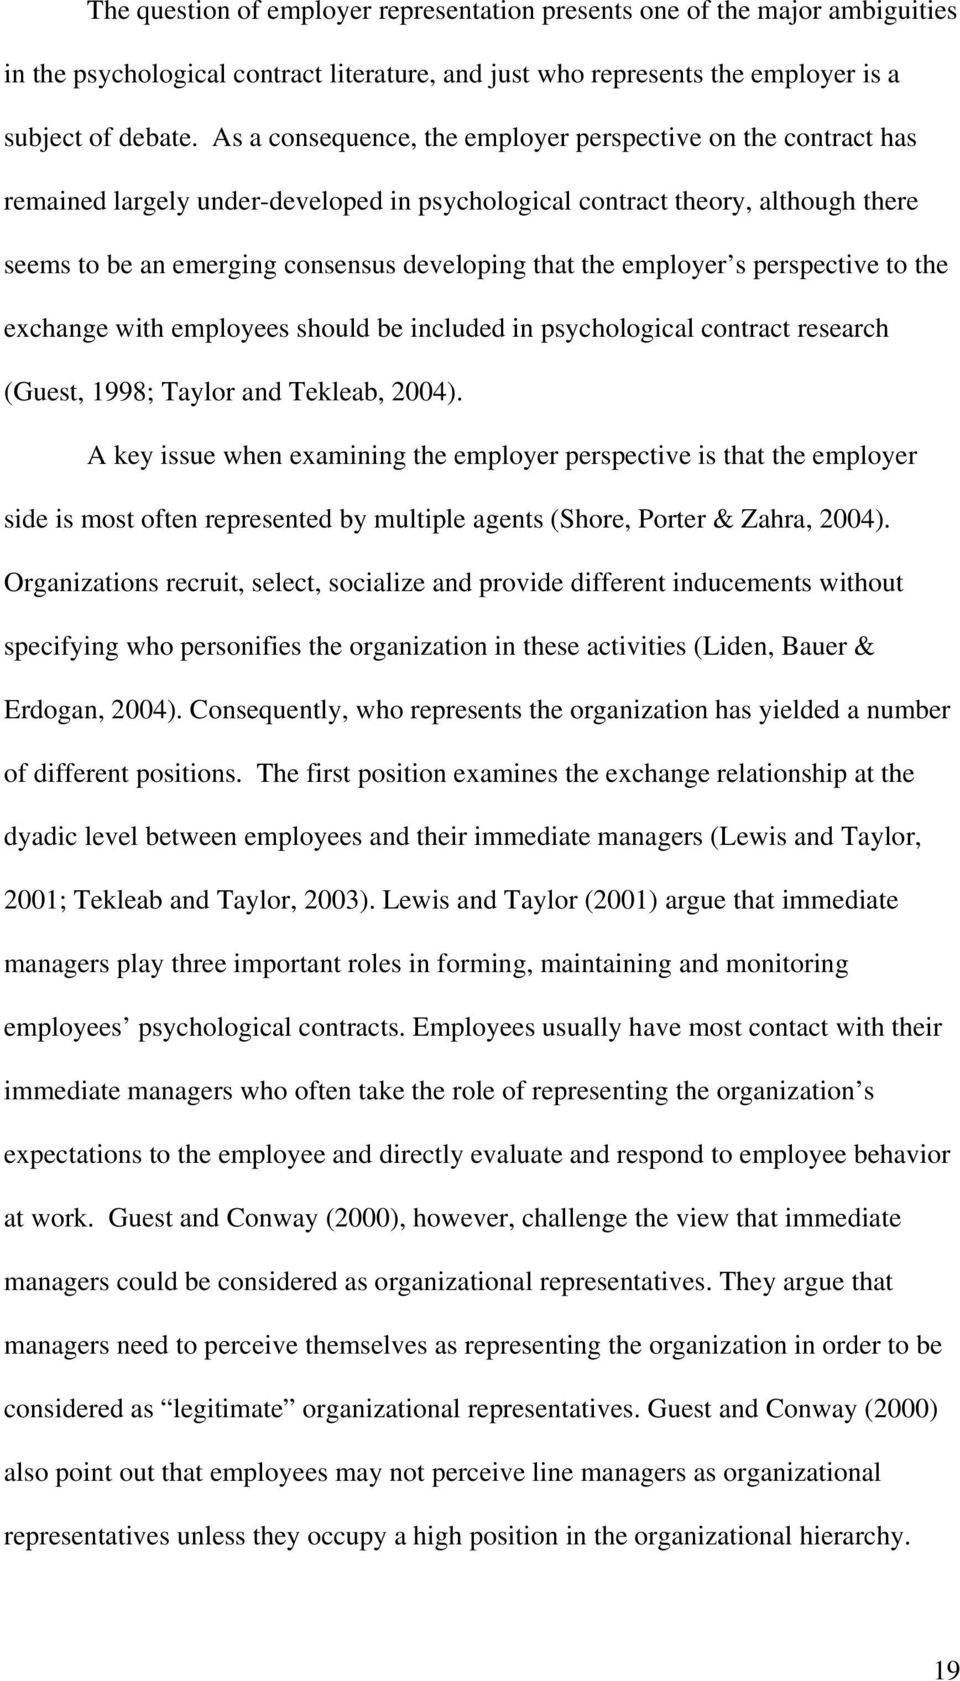 employer s perspective to the exchange with employees should be included in psychological contract research (Guest, 1998; Taylor and Tekleab, 2004).